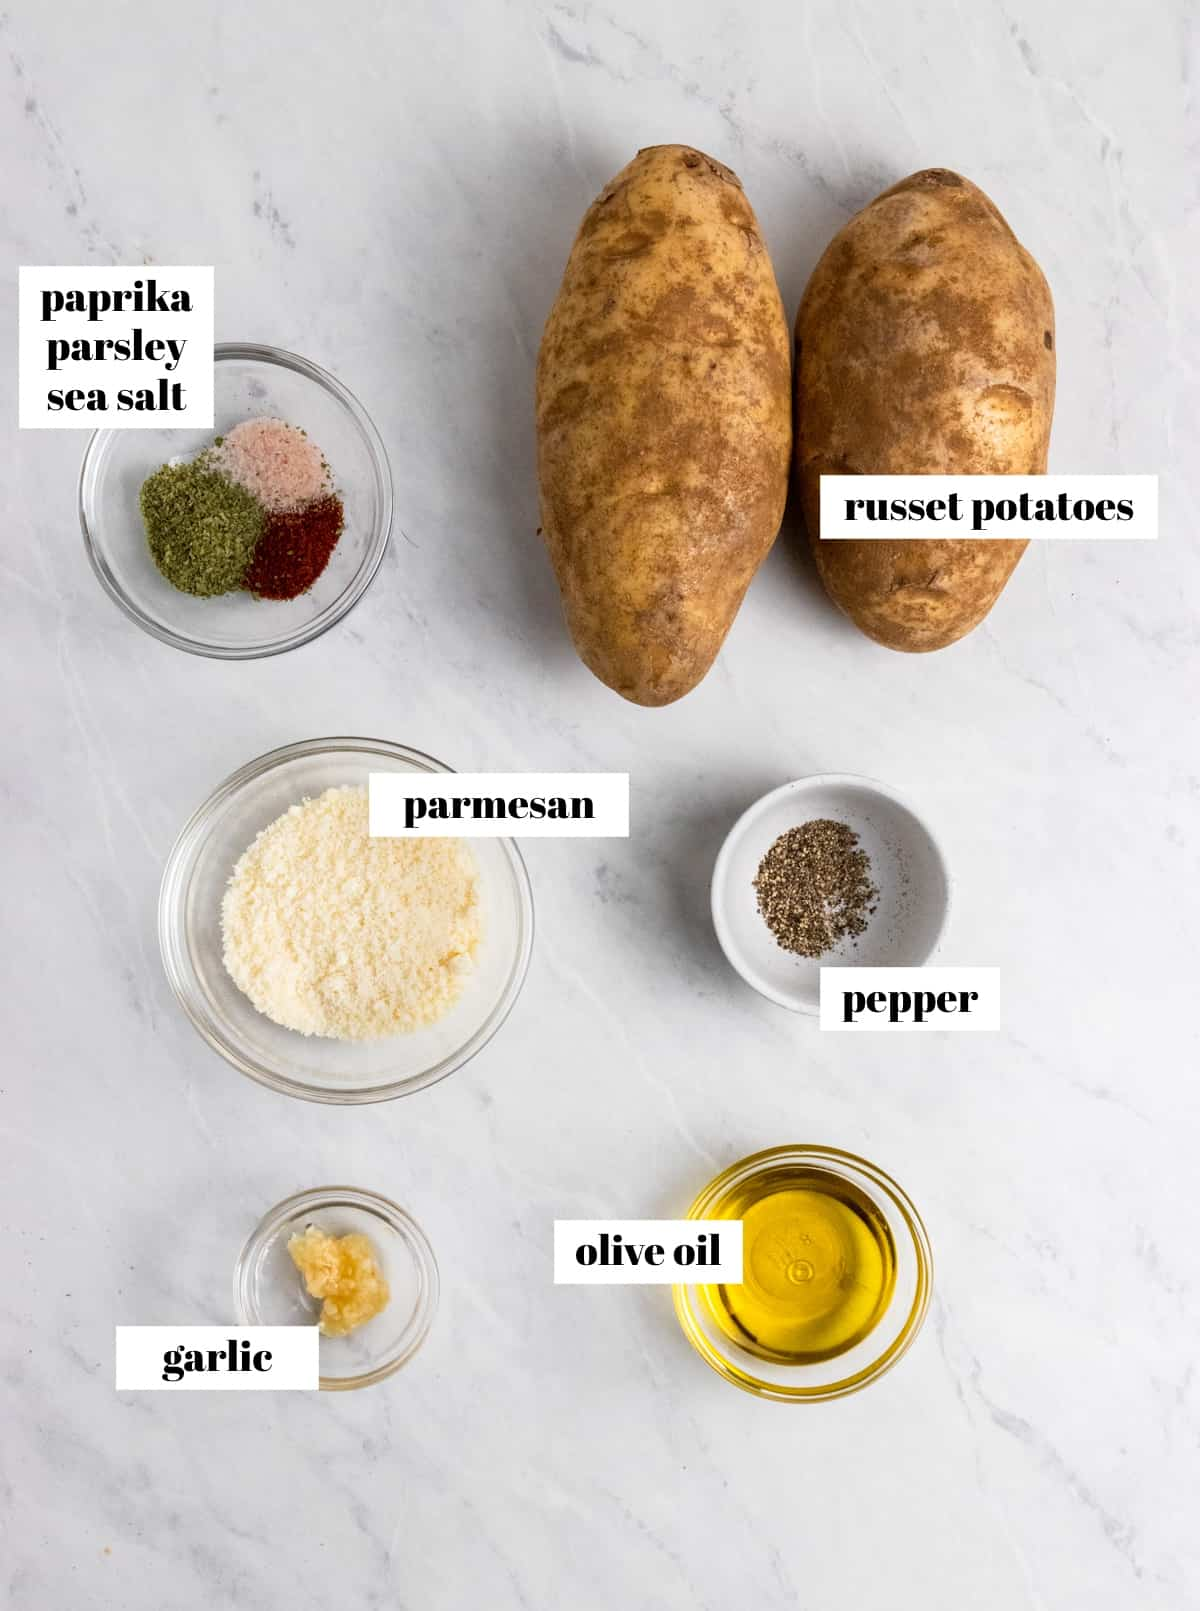 Potatoes, olive oil, parmesan and other ingredients labeled on counter.